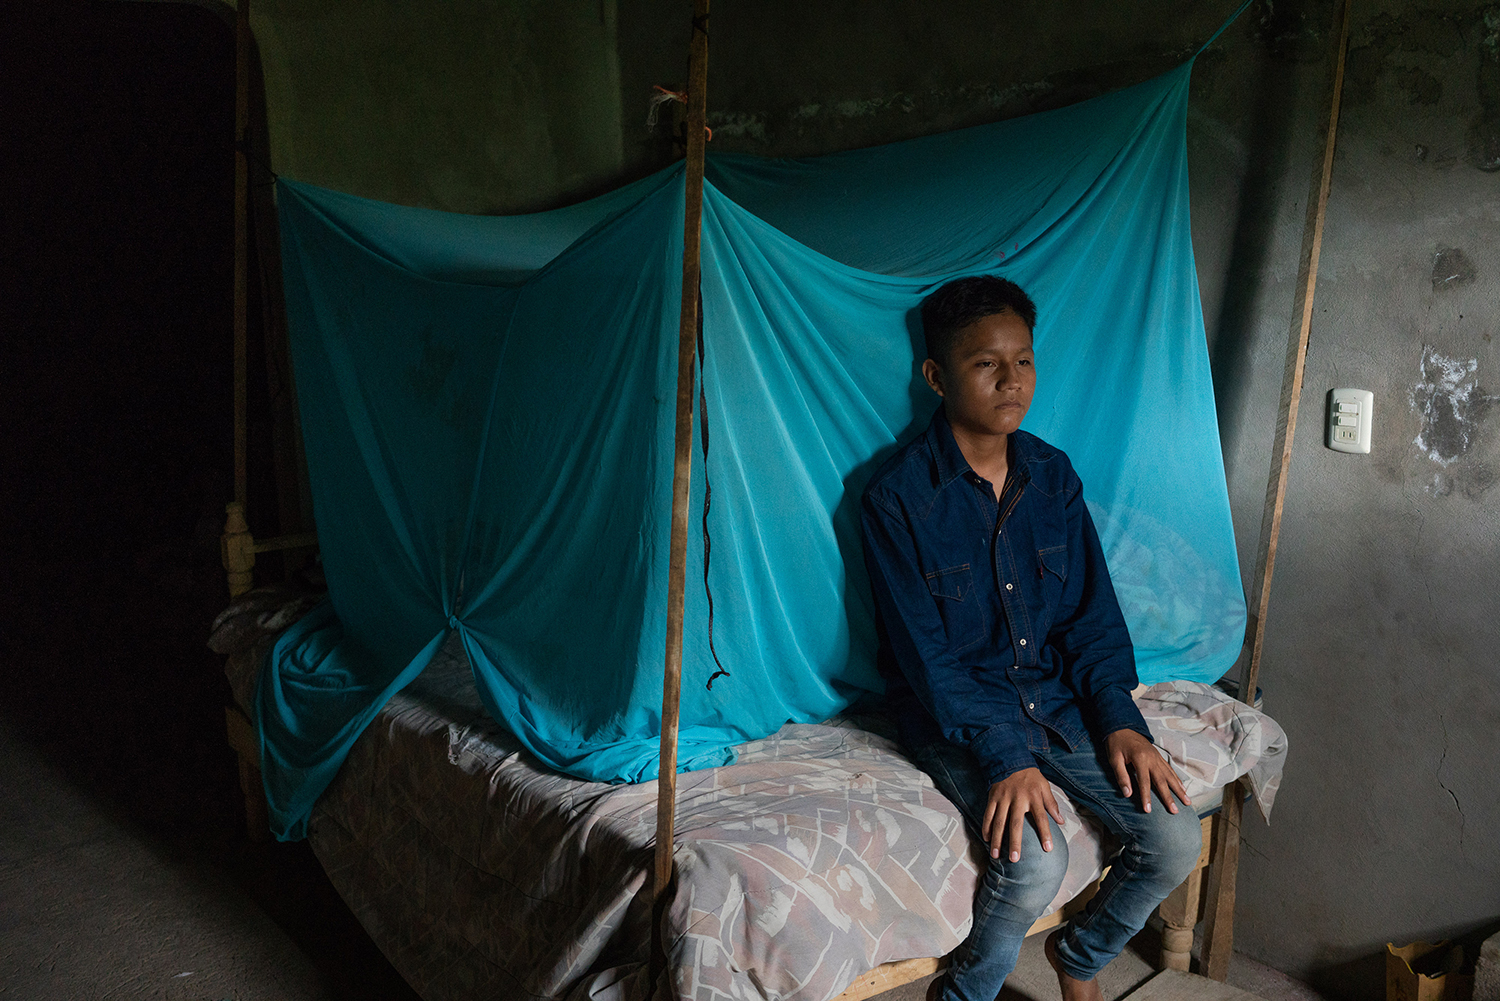 Oswaldo Ortega Maldonado, 14, sits on Aug. 25 in the room that his father reserved for his brother Claudio to use when he returned to Tlapa from the United States. No one slept there for months, the family said.